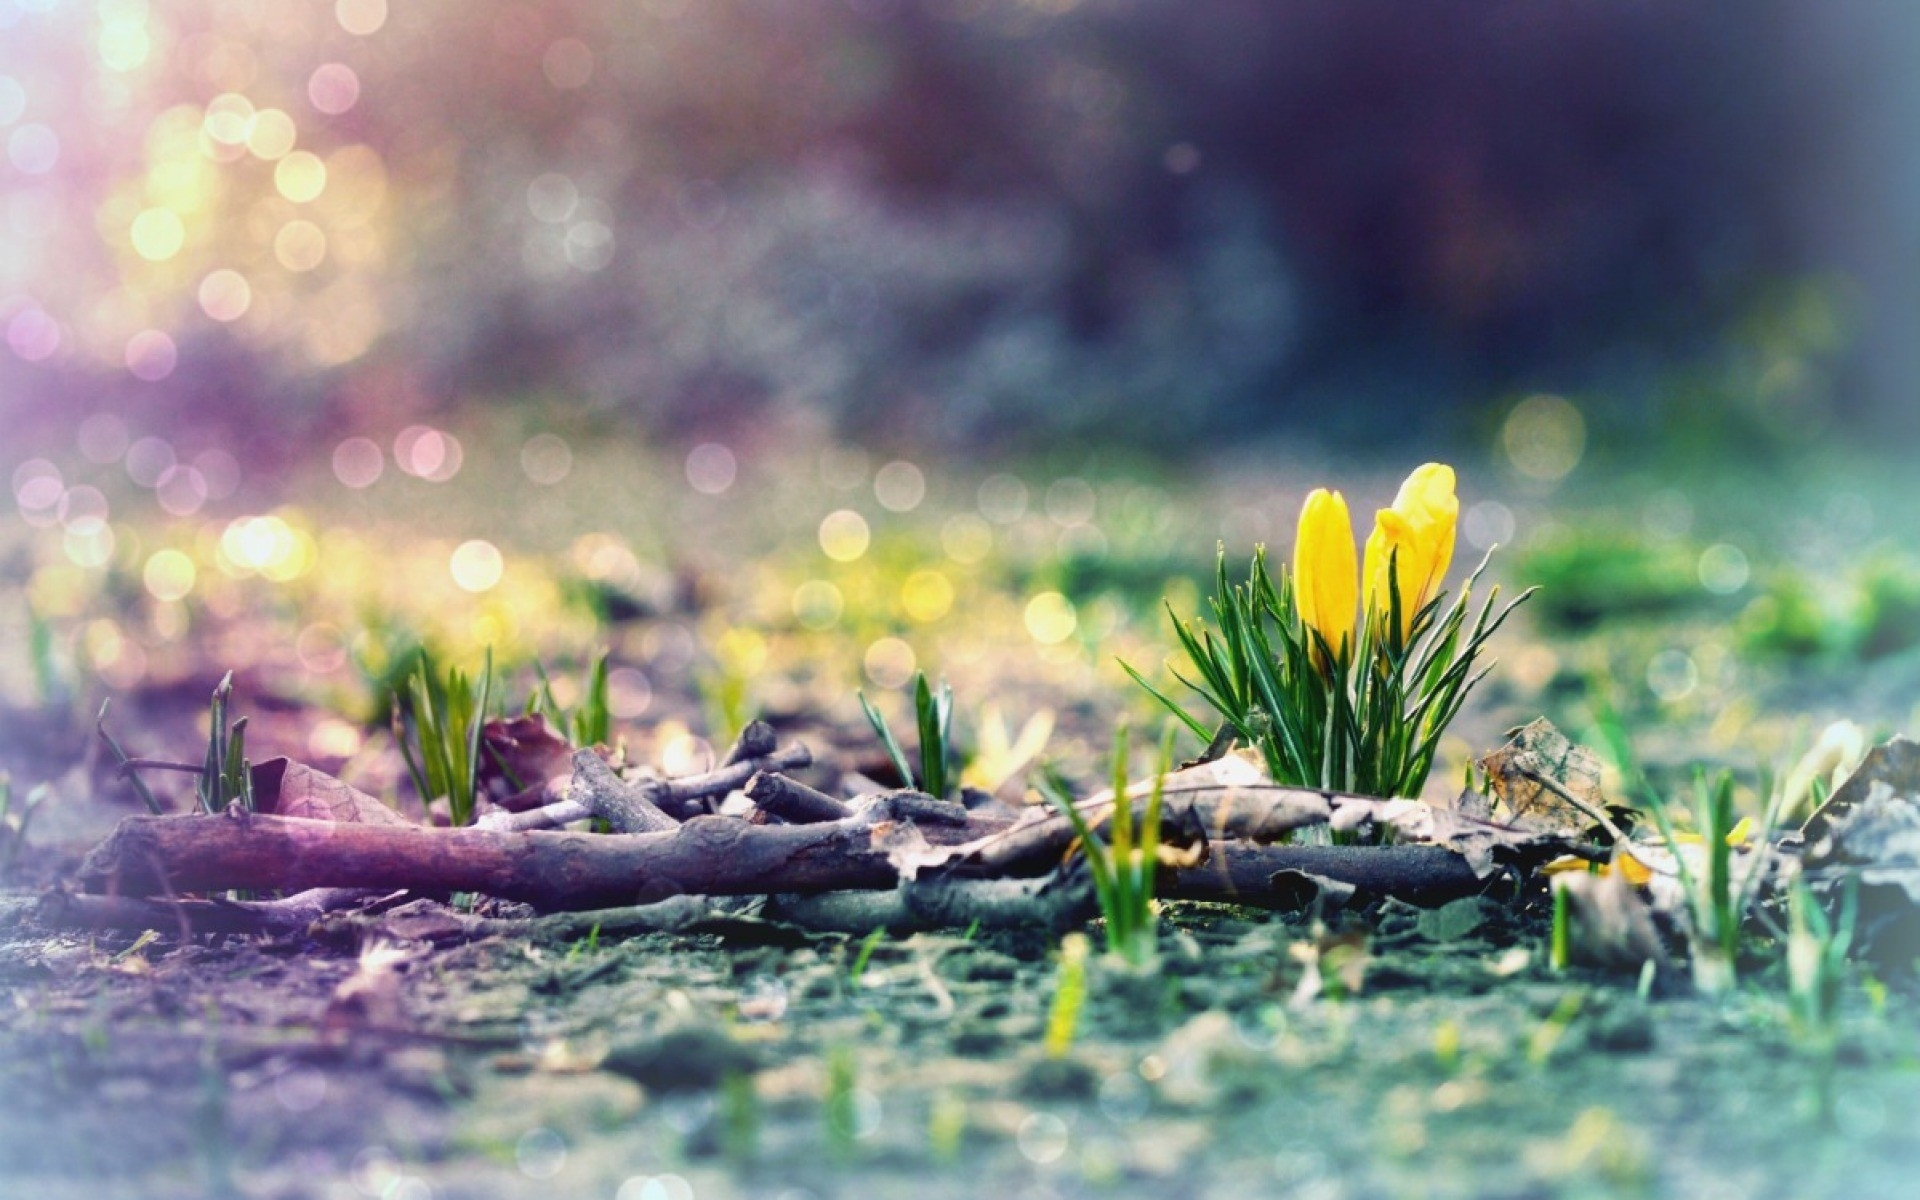 early spring hd wallpaper (50+ images)